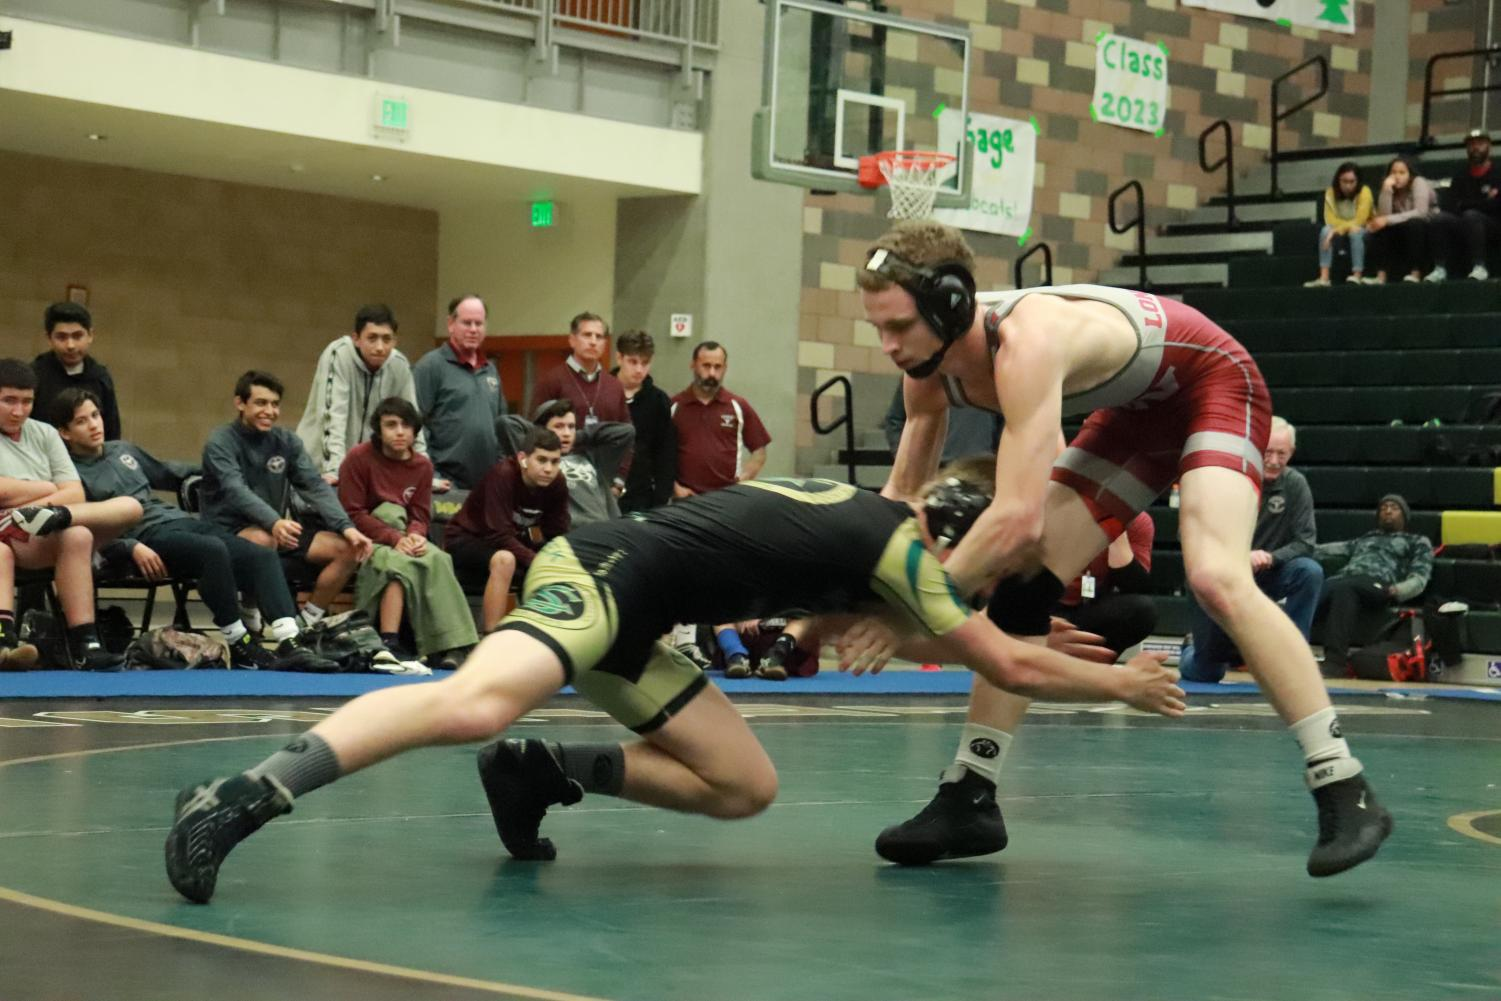 Junior+Cole+Kirby+shoots+in+for+a+double-leg+on+his+Rancho+Buena+Vista+opponent.+Kirby+wrestled+up+a+weight+class+this+duel+at+132.